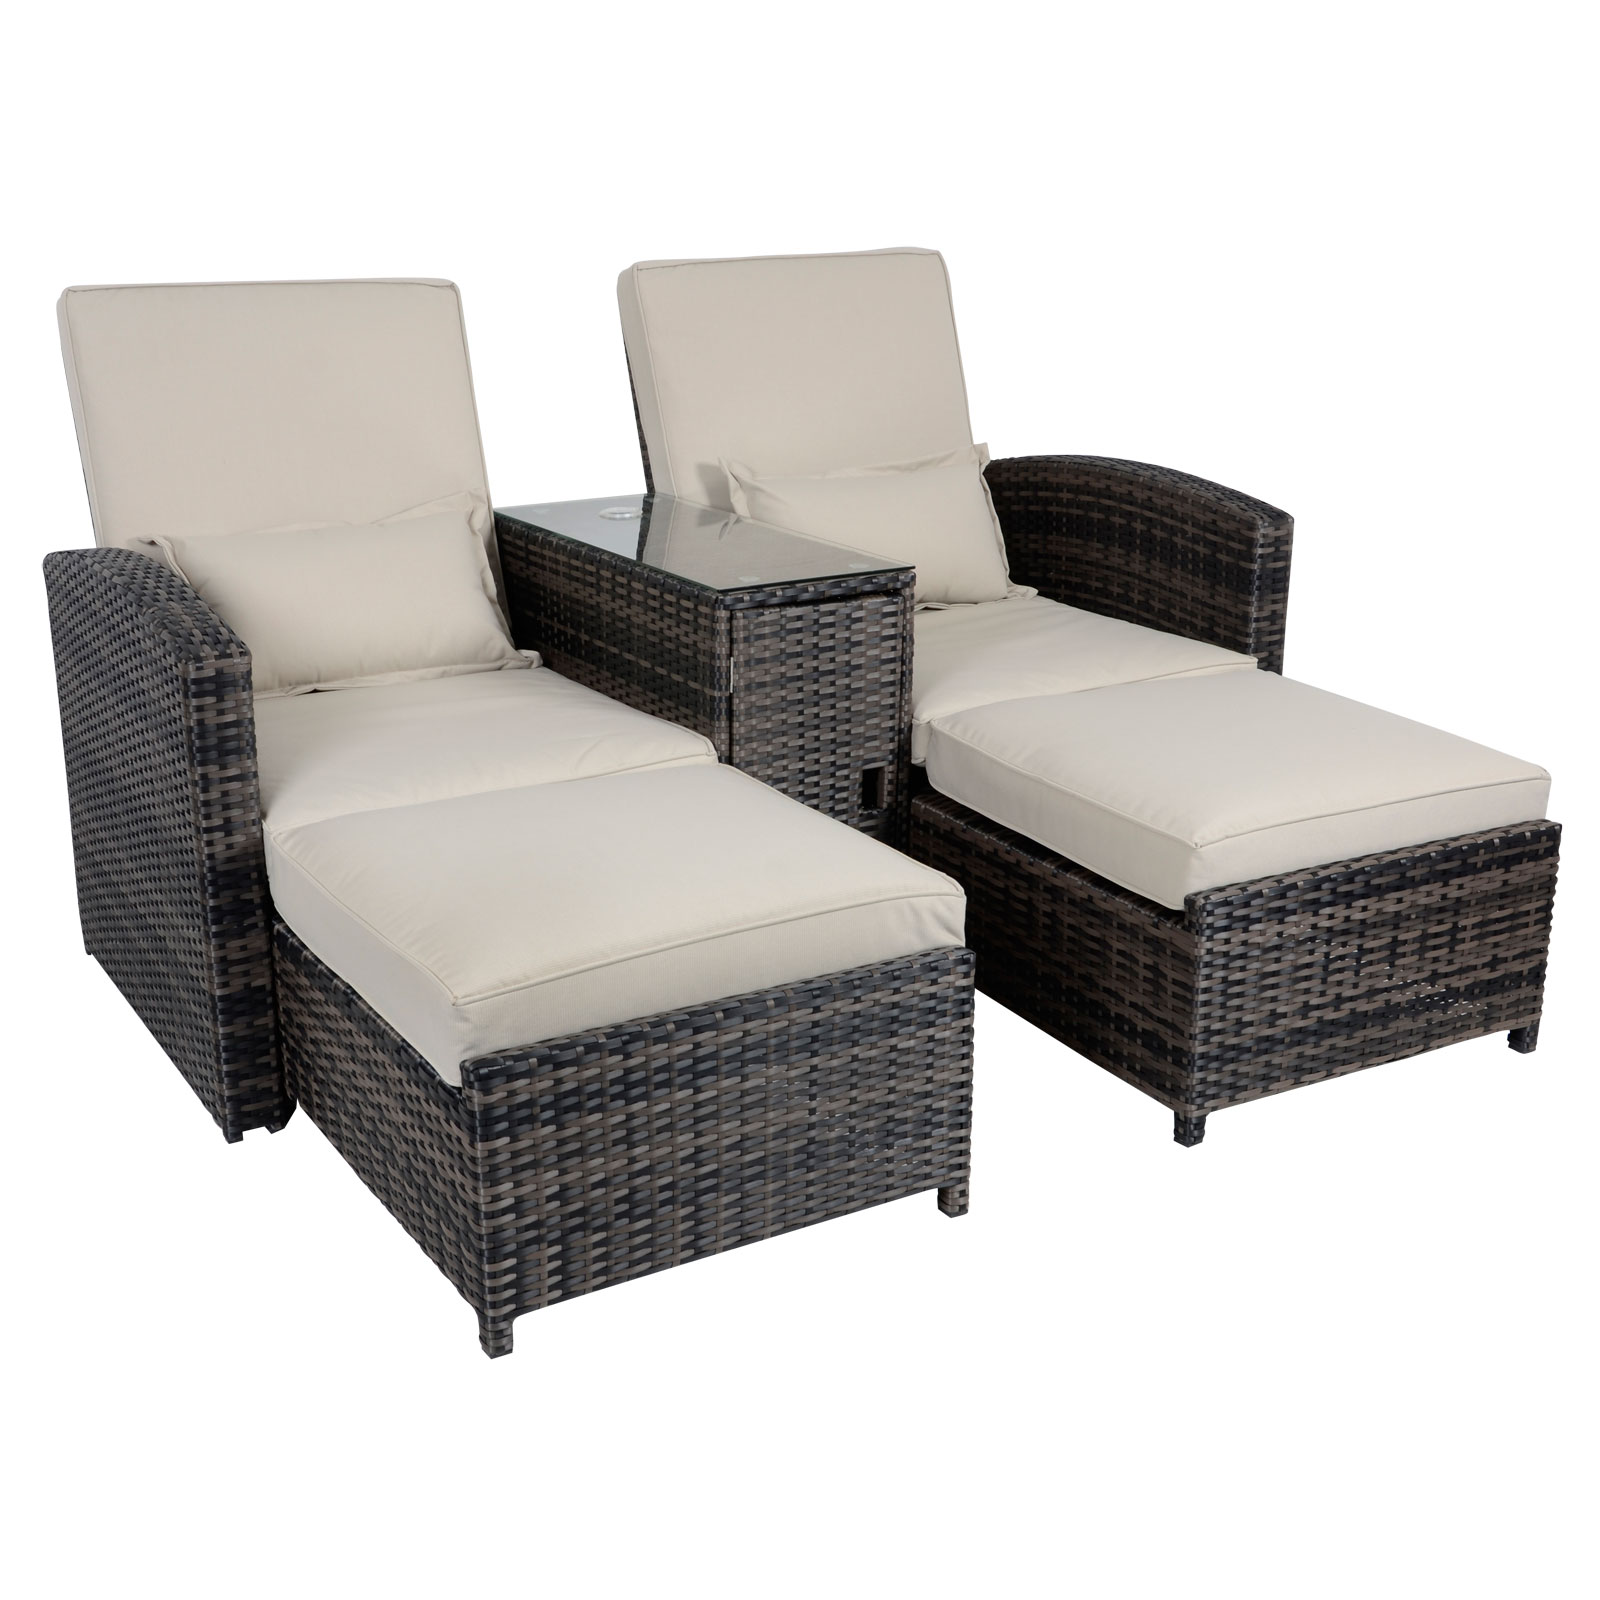 antigua rattan sun lounger companion relaxer chair outdoor garden furniture set ebay. Black Bedroom Furniture Sets. Home Design Ideas